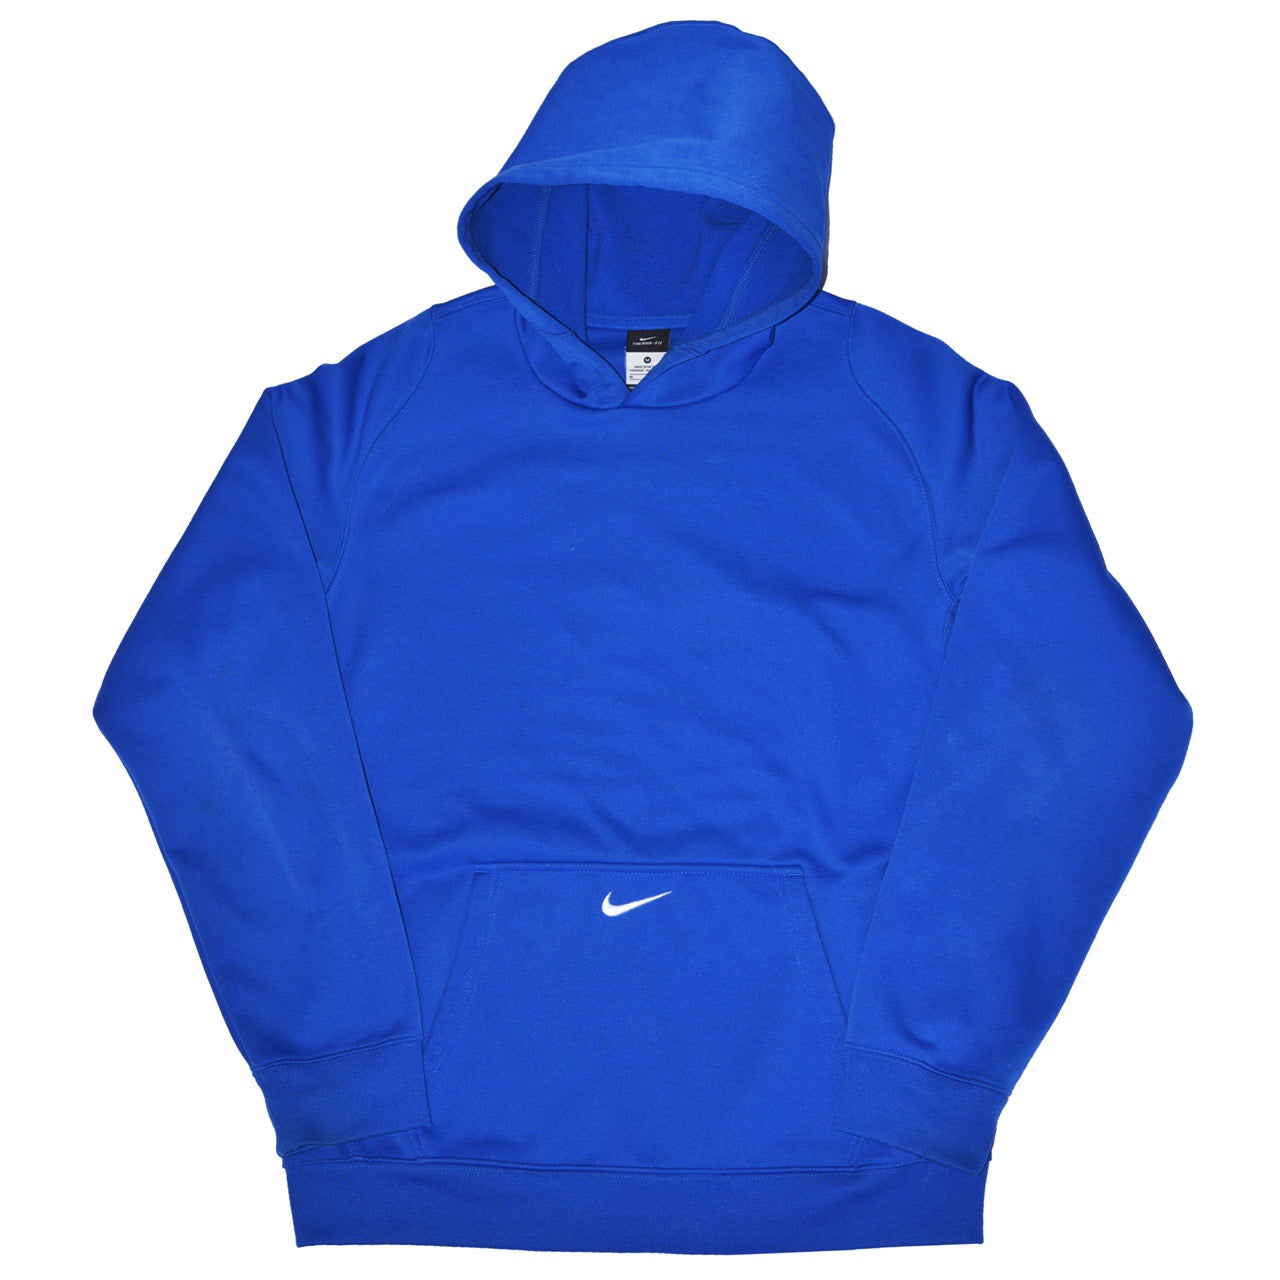 Vintage Nike Pocket Swoosh Hoodie Blue - Small